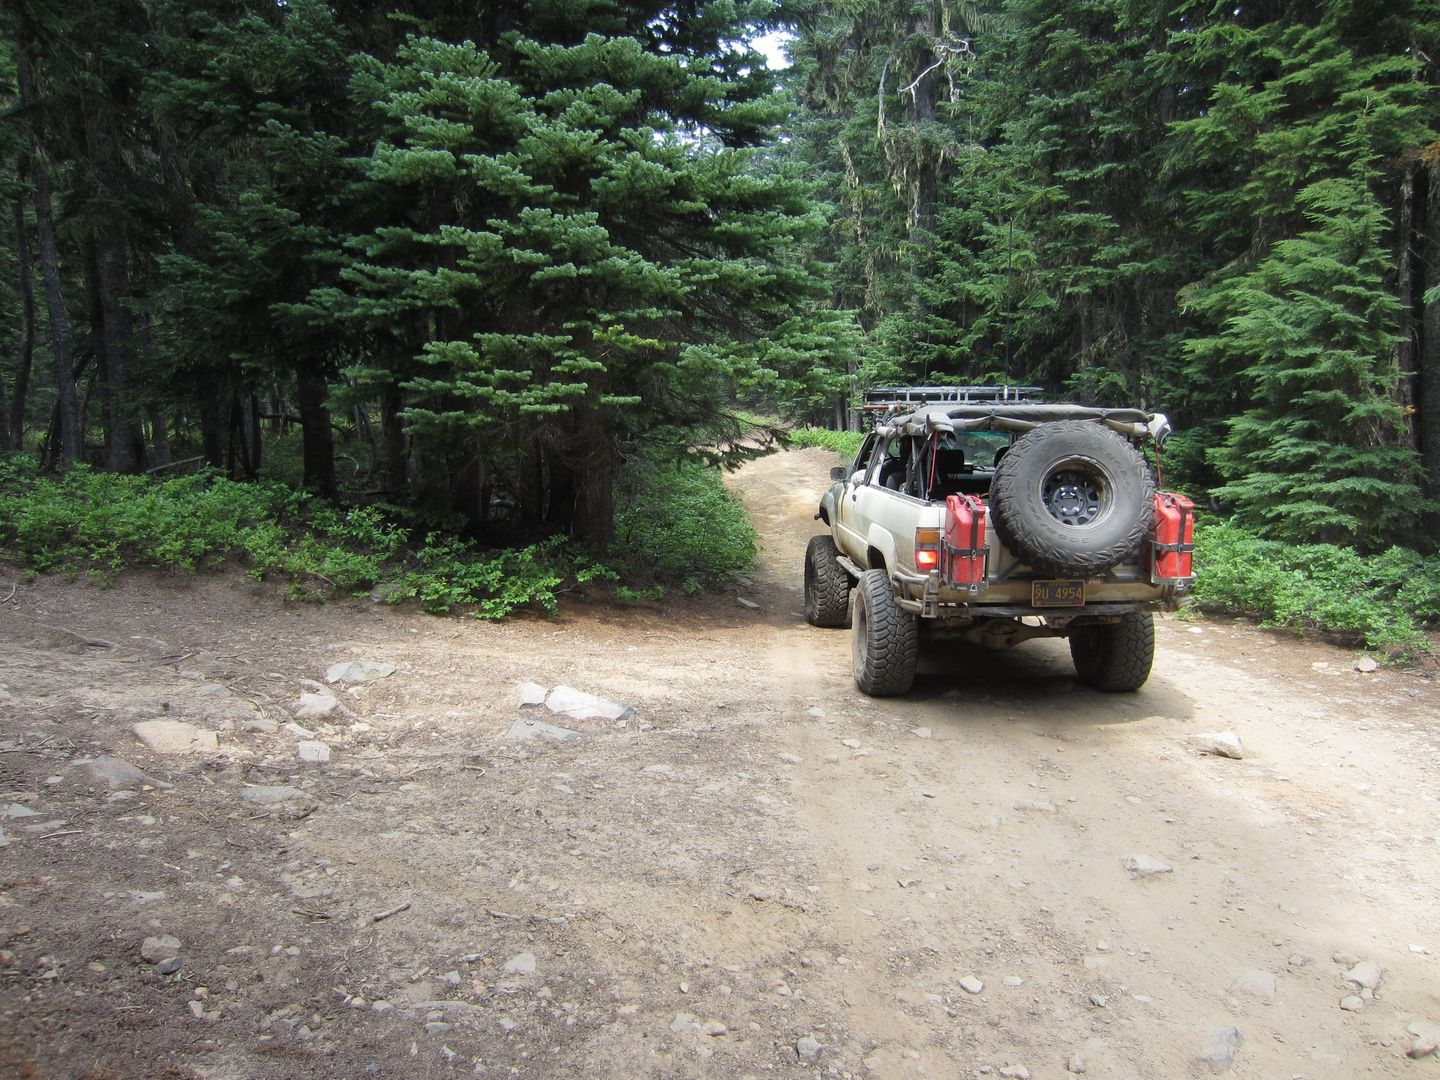 Bennett Pass Road - Waypoint 9: Stay North at Unmarked Trail